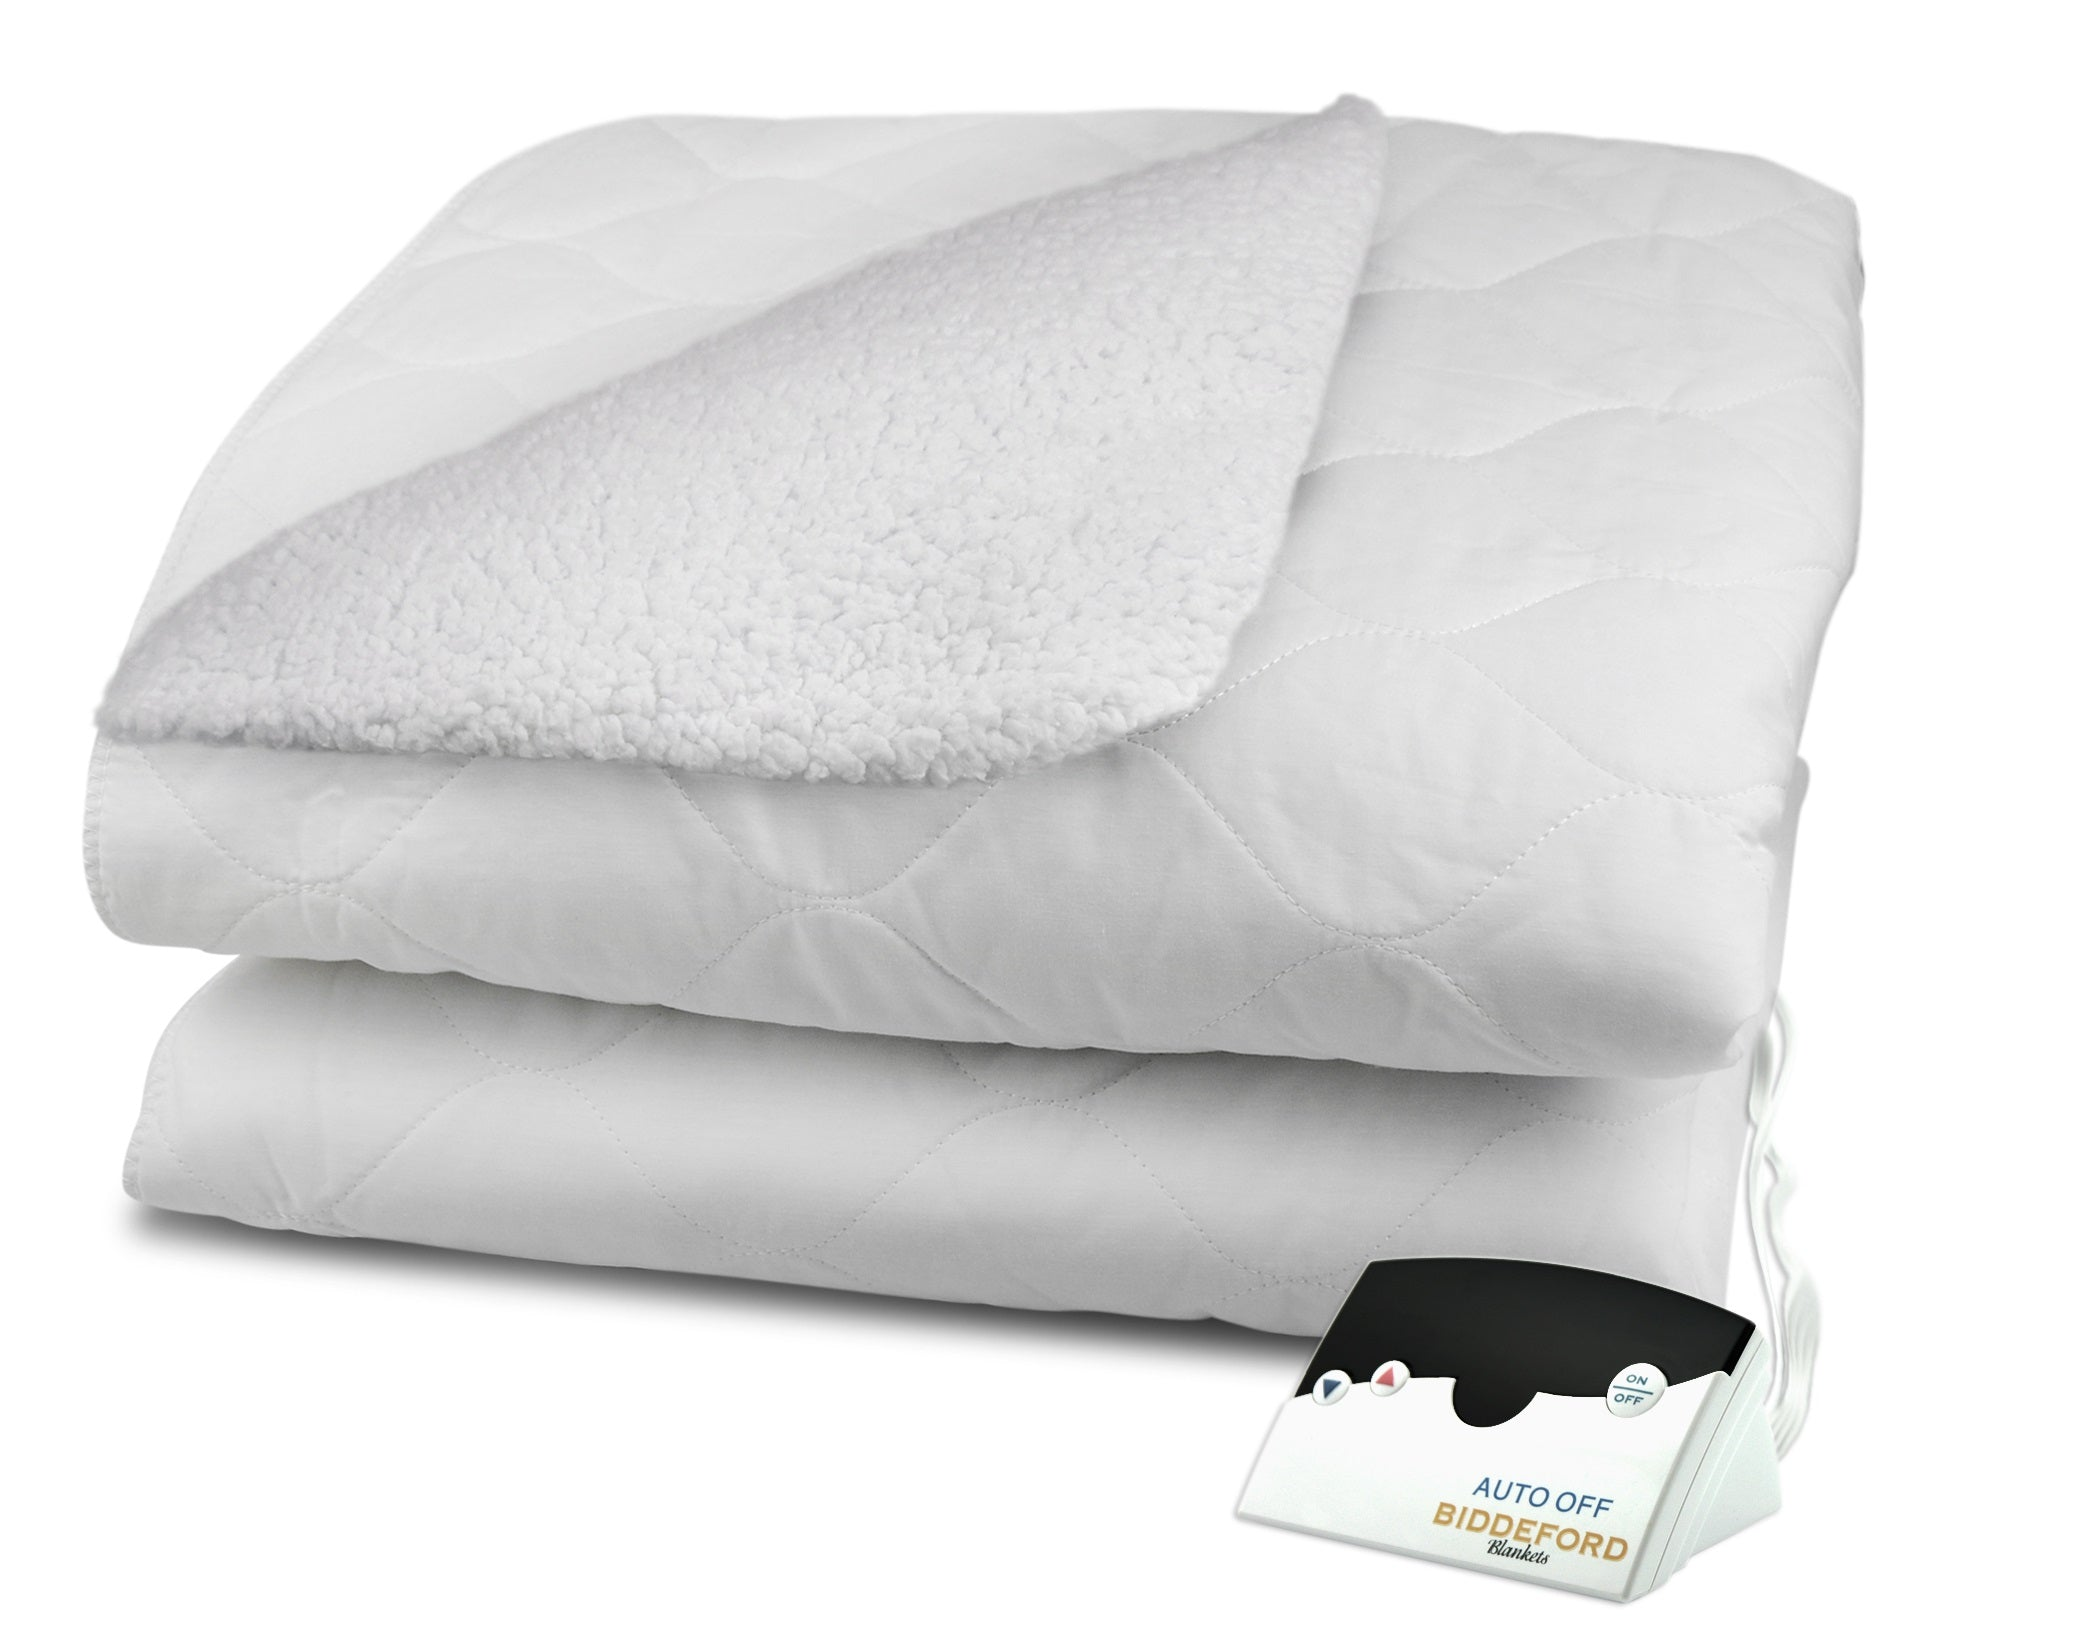 sherpa quilted ideas electric blanket ga fanciful incredible biddeford blankets throws pad heated dark mattress parentsneed